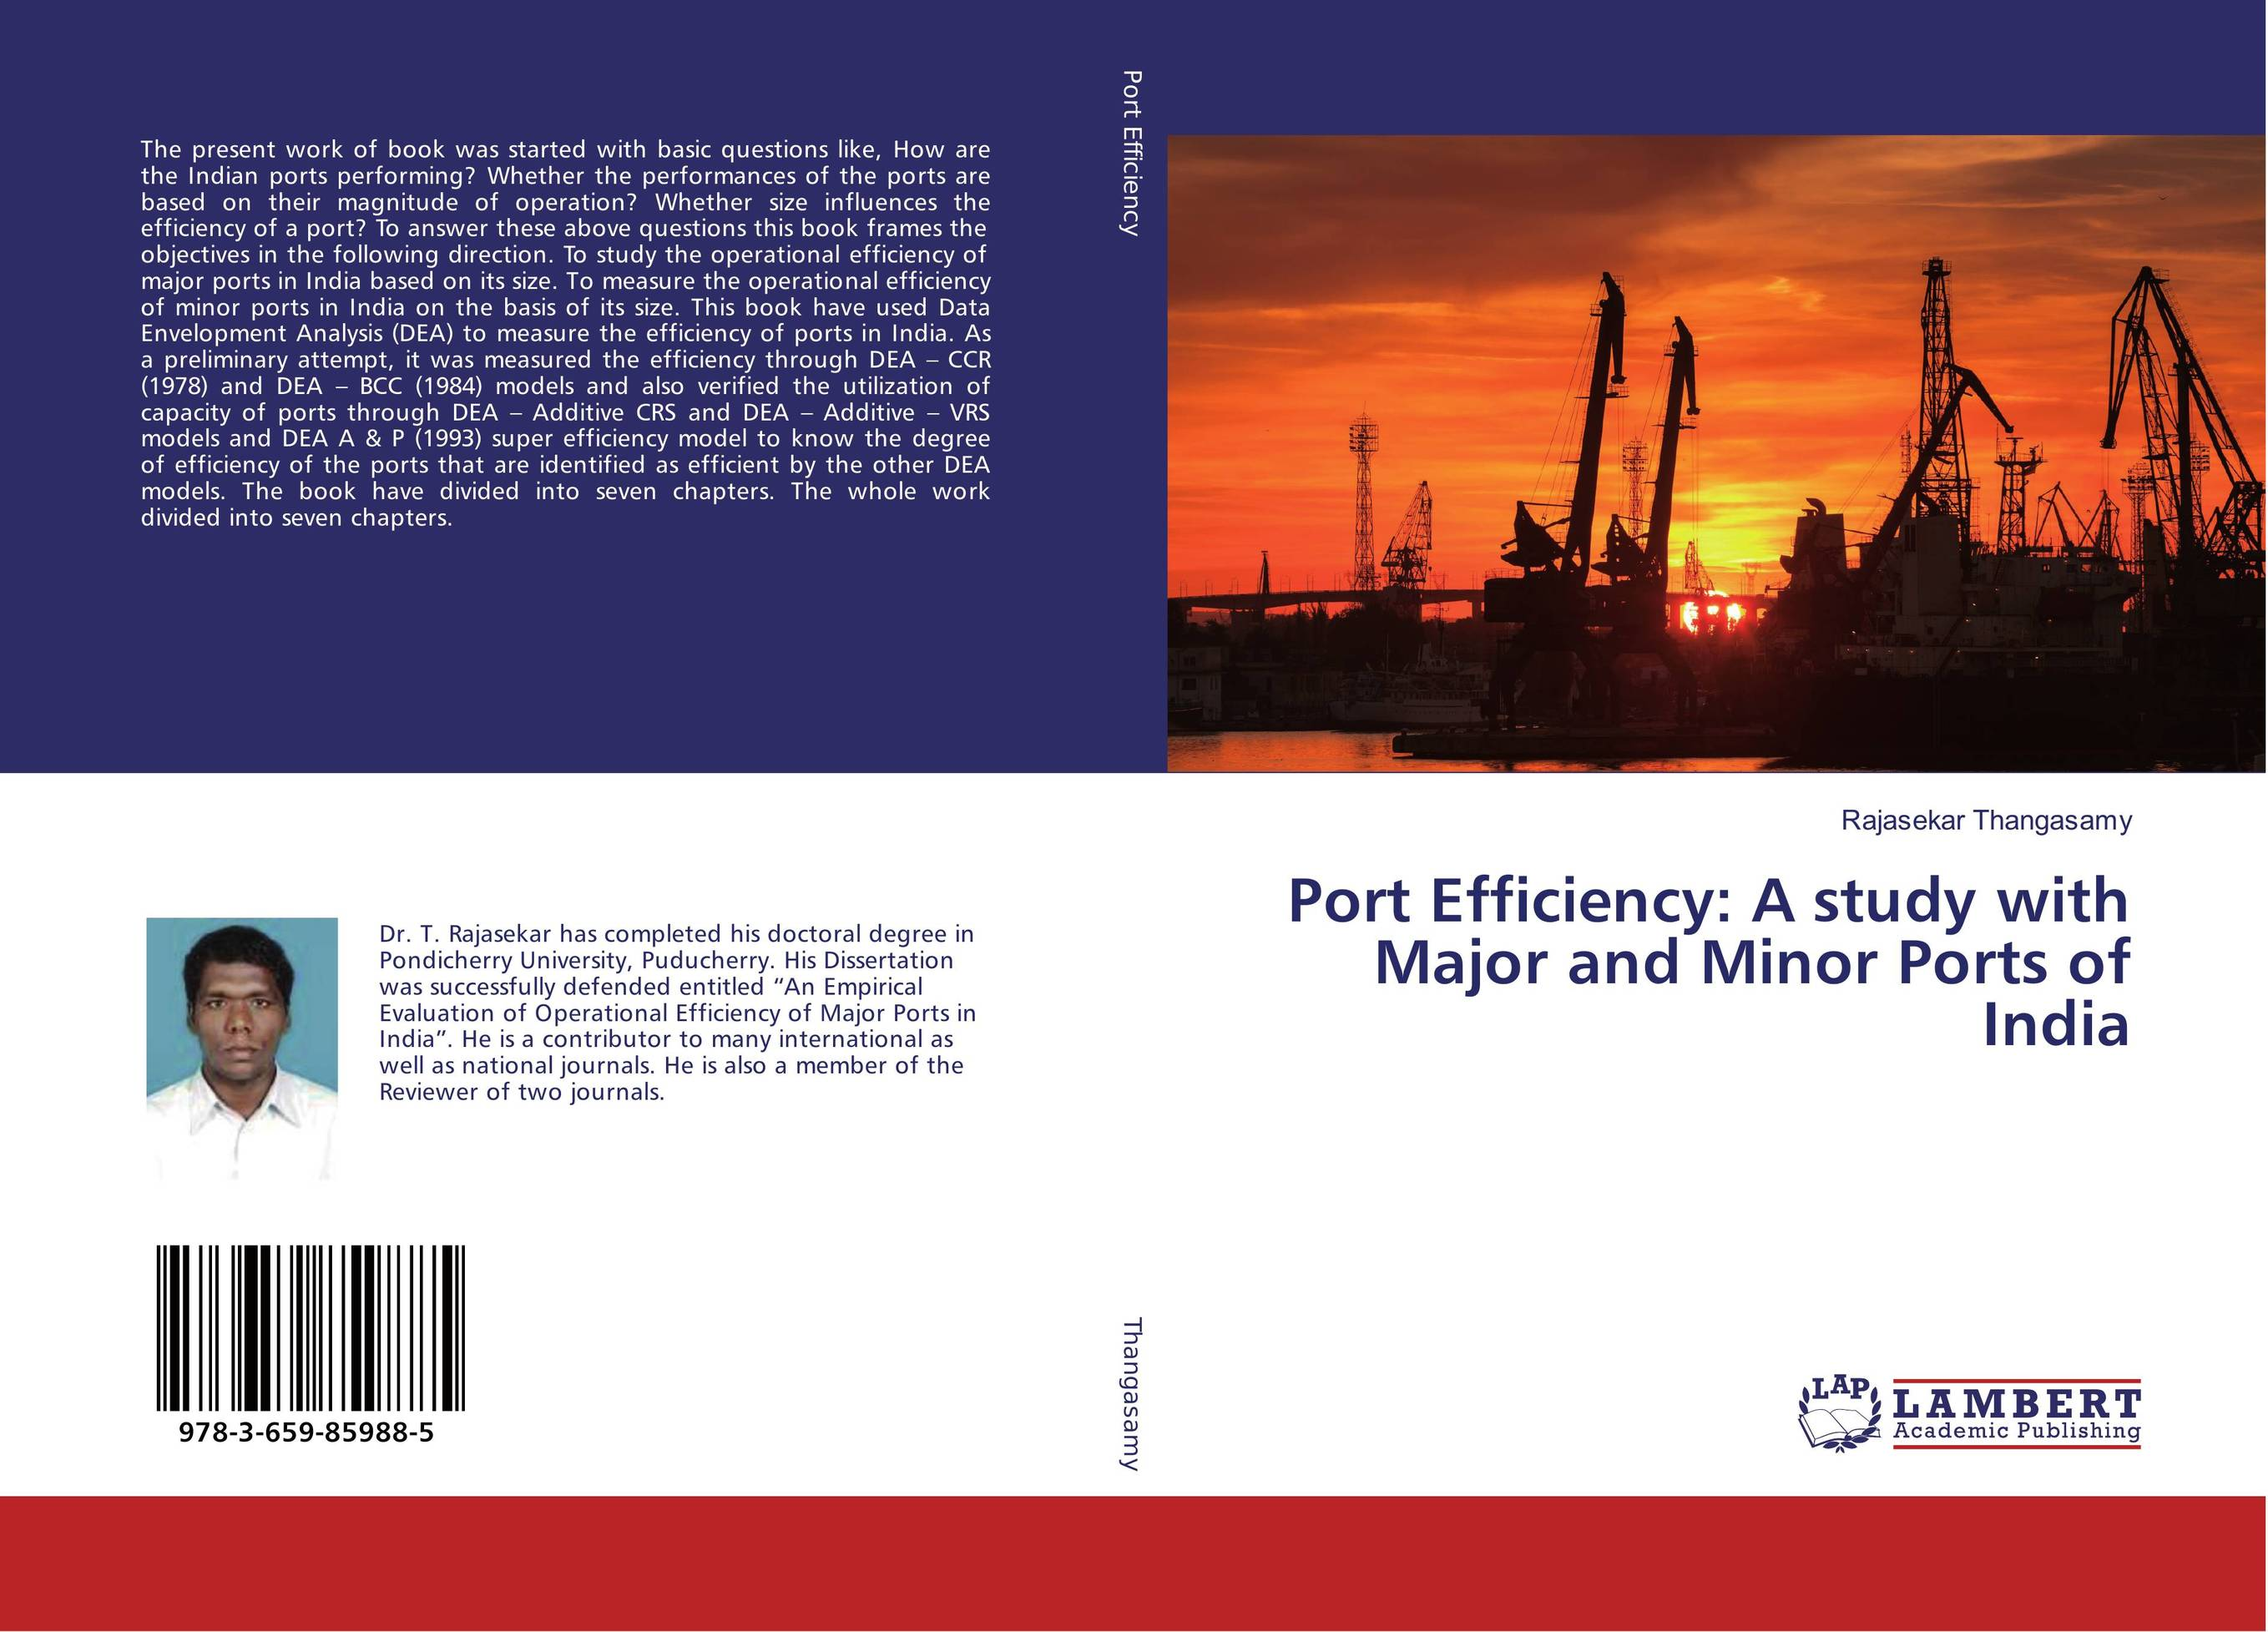 Port Efficiency: A study with Major and Minor Ports of India empirical evaluation of operational efficiency of major ports in india